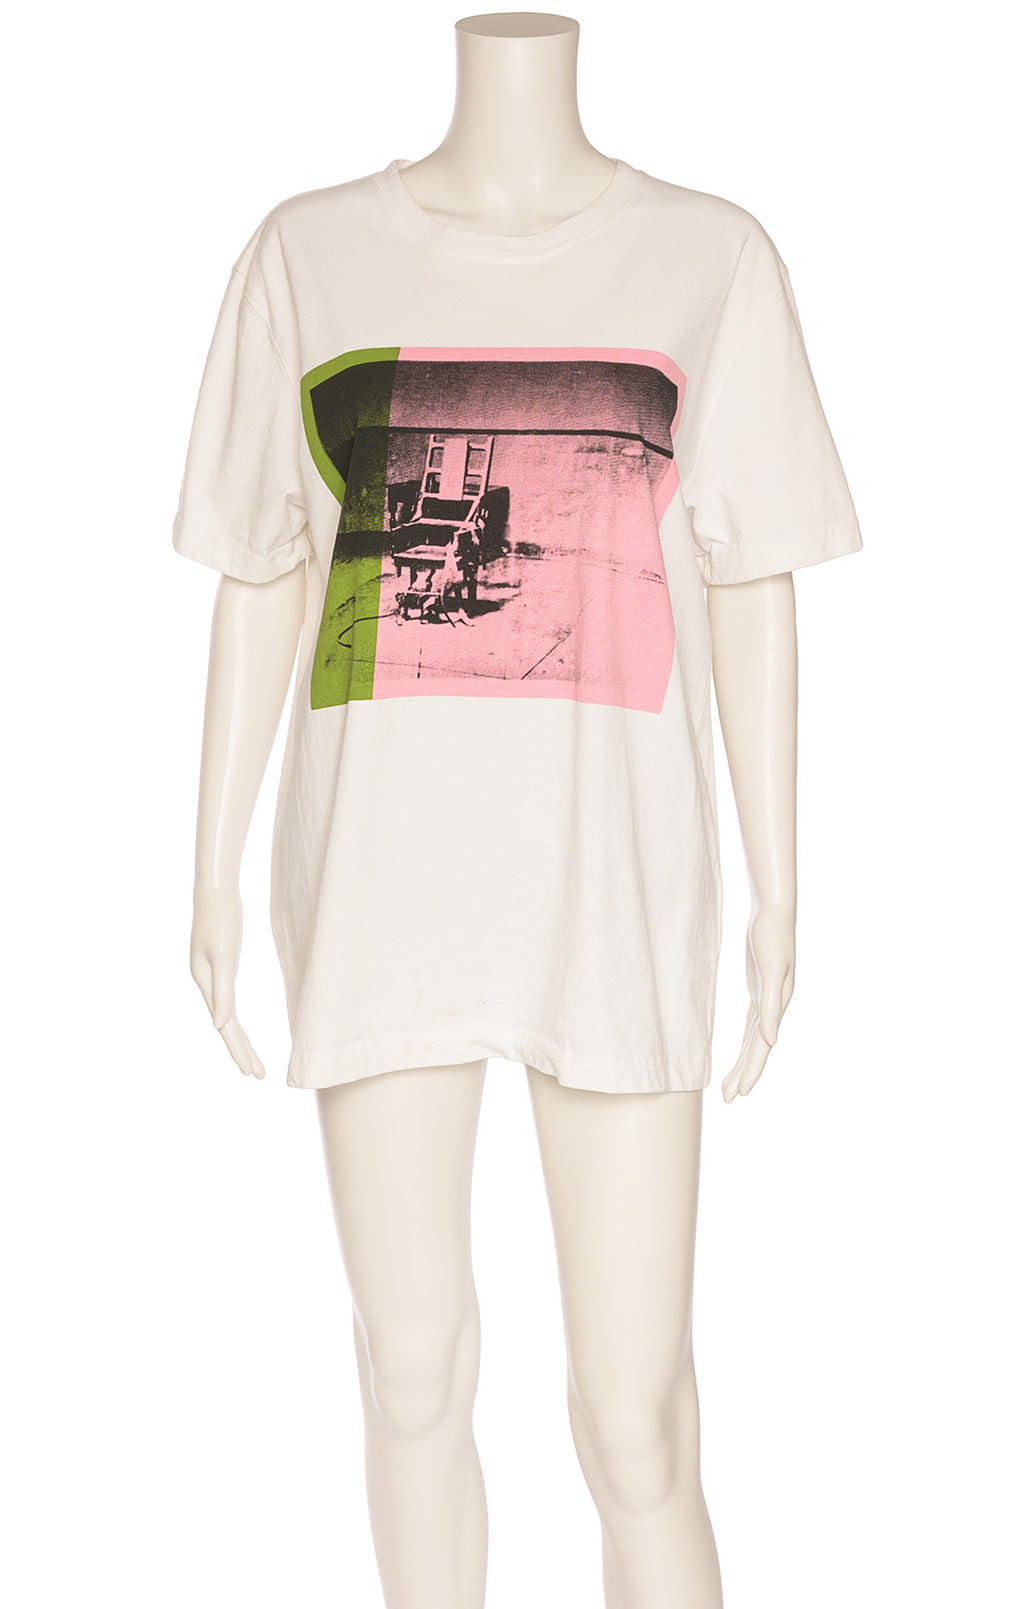 White short sleeve crew neck t-shirt with pink green and black Warhol